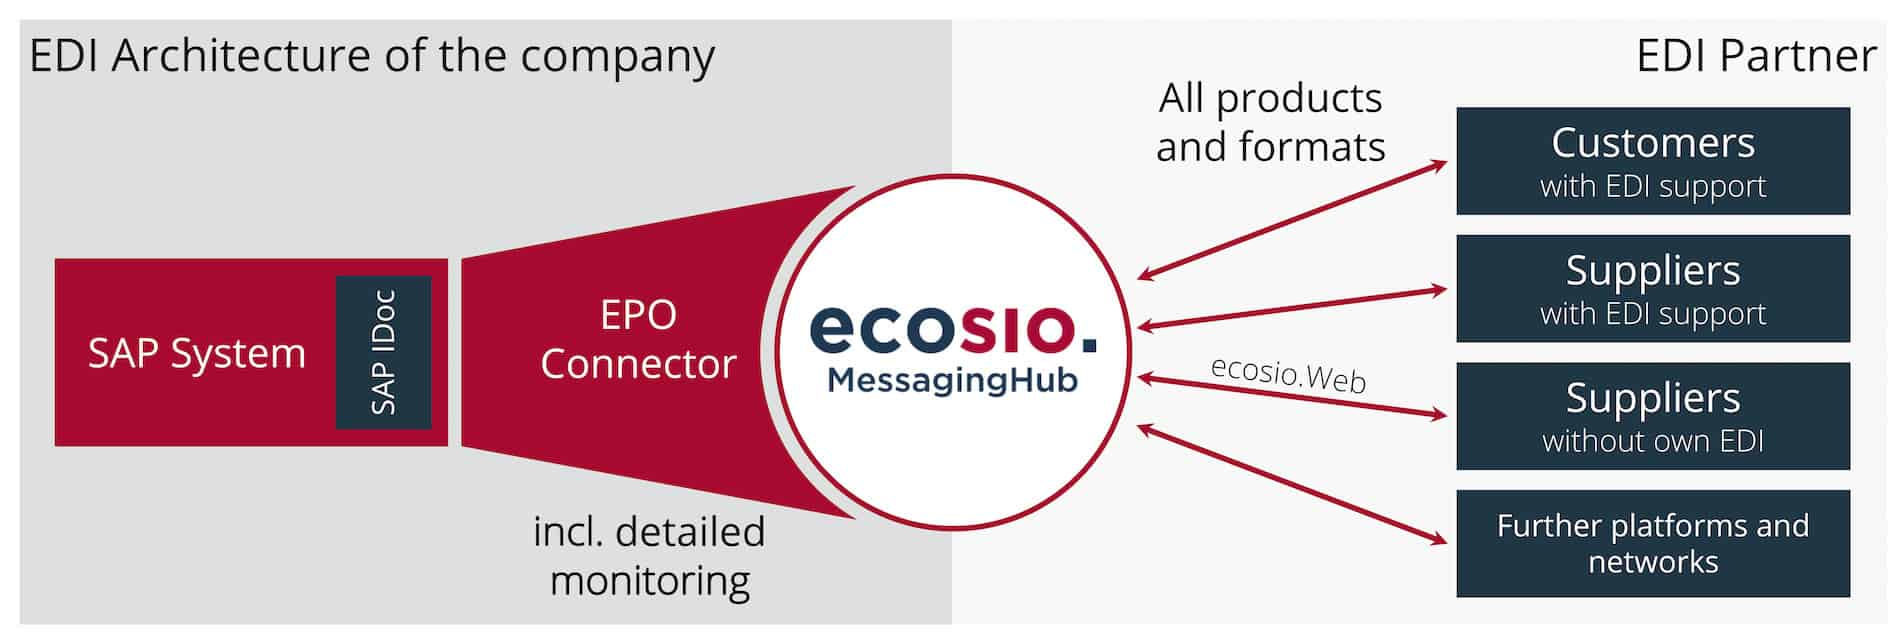 EDI Workflow with an EPO Connector and ecosio.MessagingHub